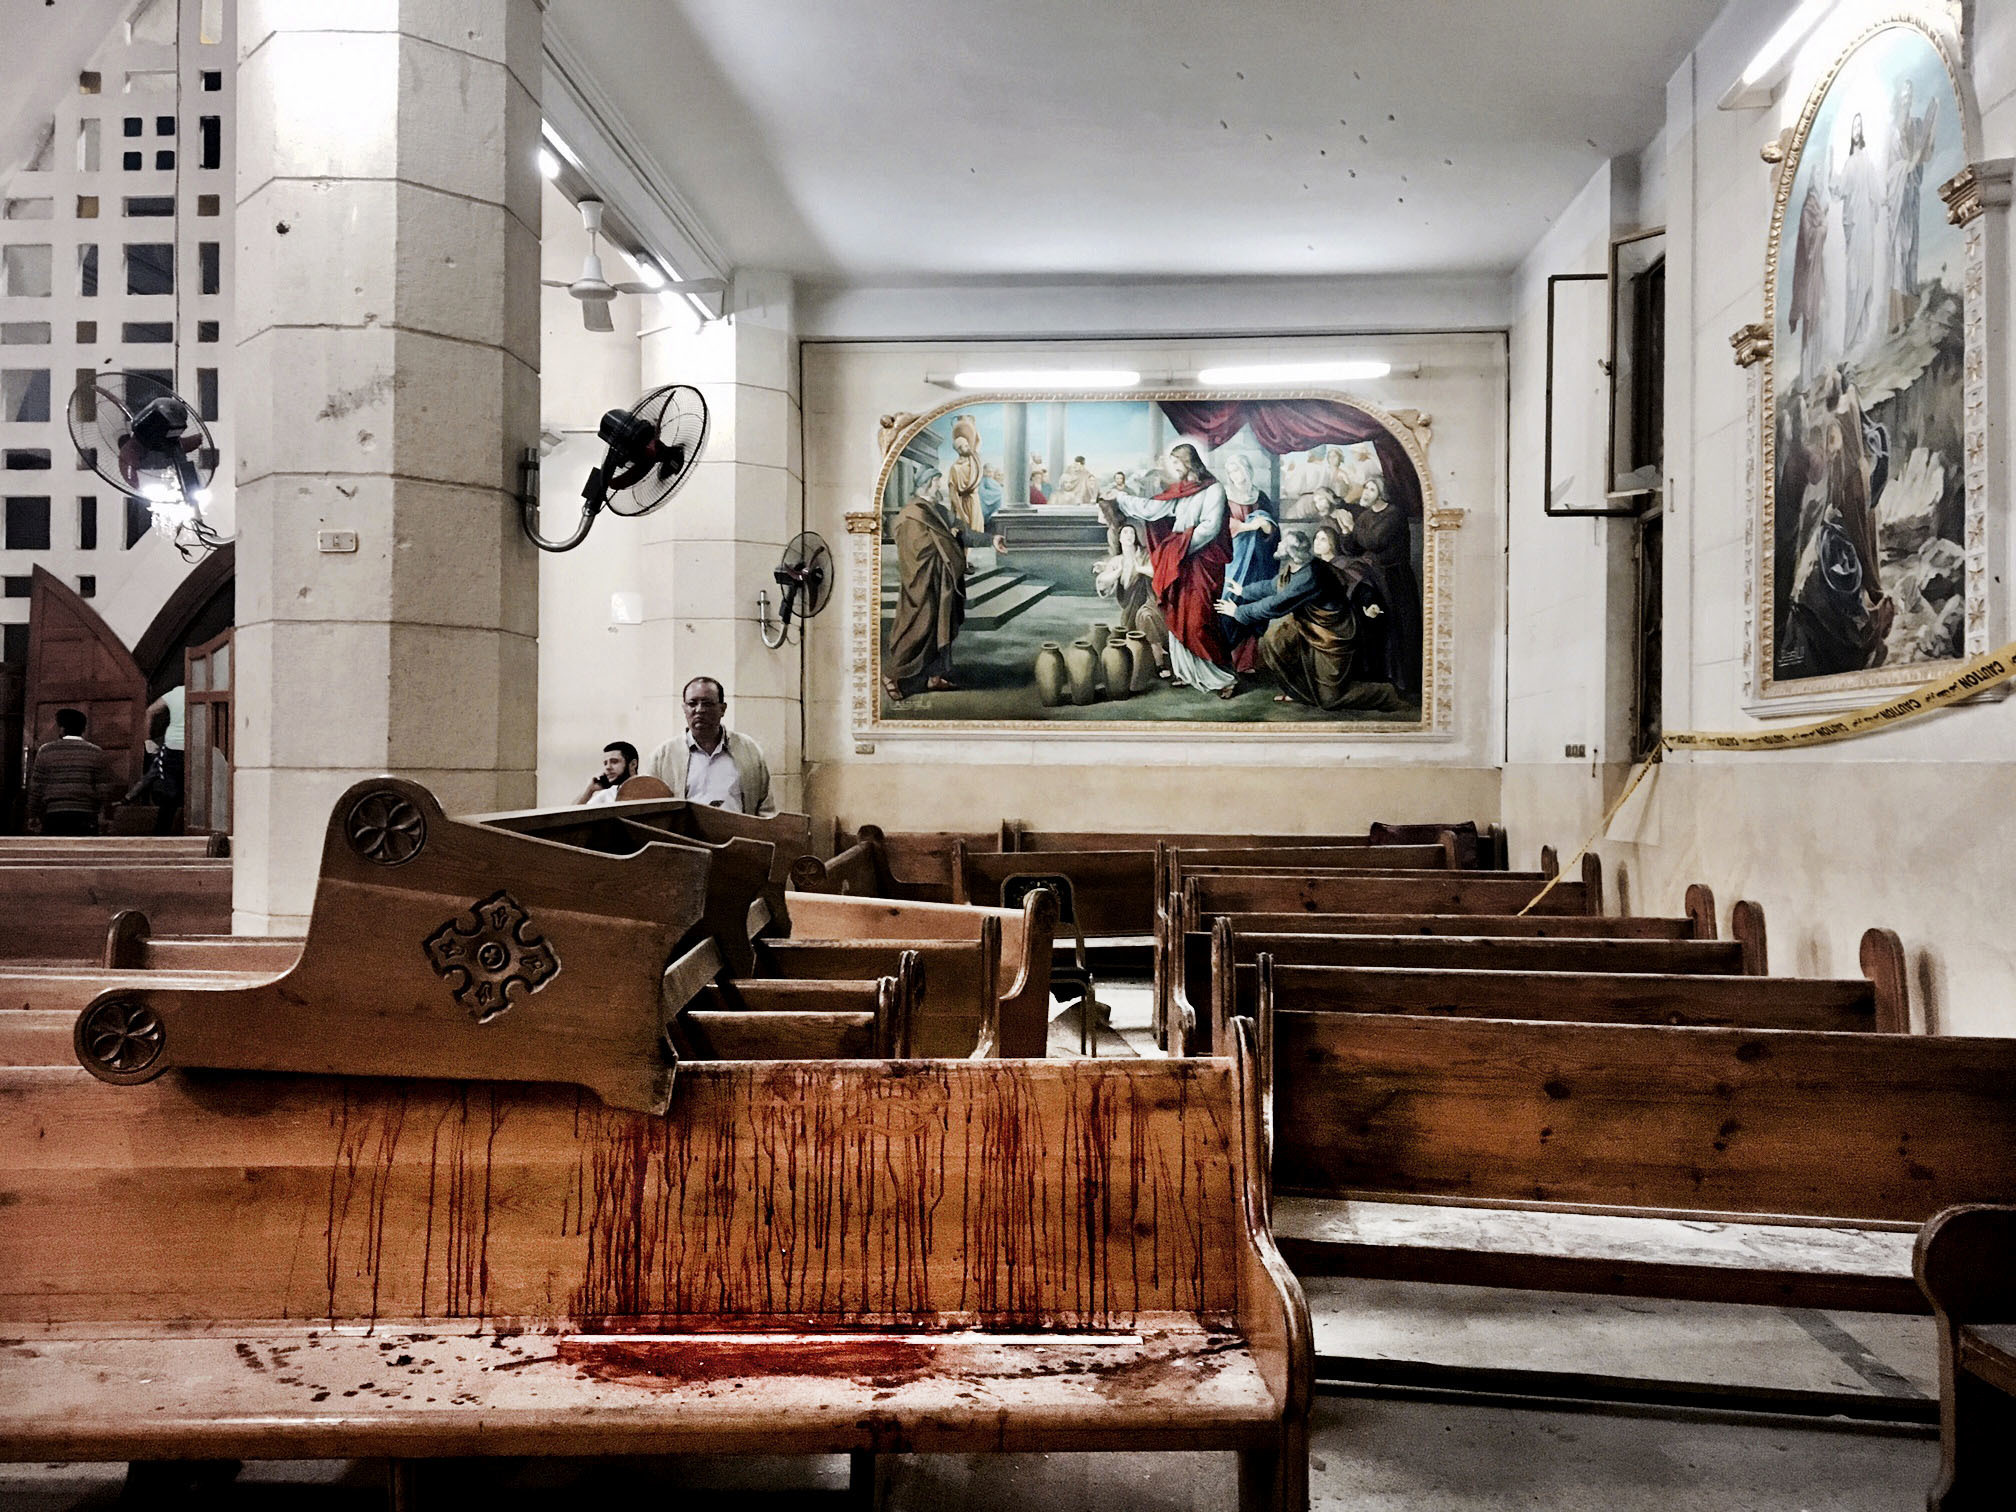 Blood stains pews inside the St. George Church after a suicide bombing, in the Nile Delta town of Tanta, Egypt, Sunday, April 9, 2017. Bombs exploded at two Coptic churches in the northern Egyptian cities of Tanta and Alexandria as worshippers were celebrating Palm Sunday, killing over 40 people and wounding scores more in assaults claimed by the Islamic State group.